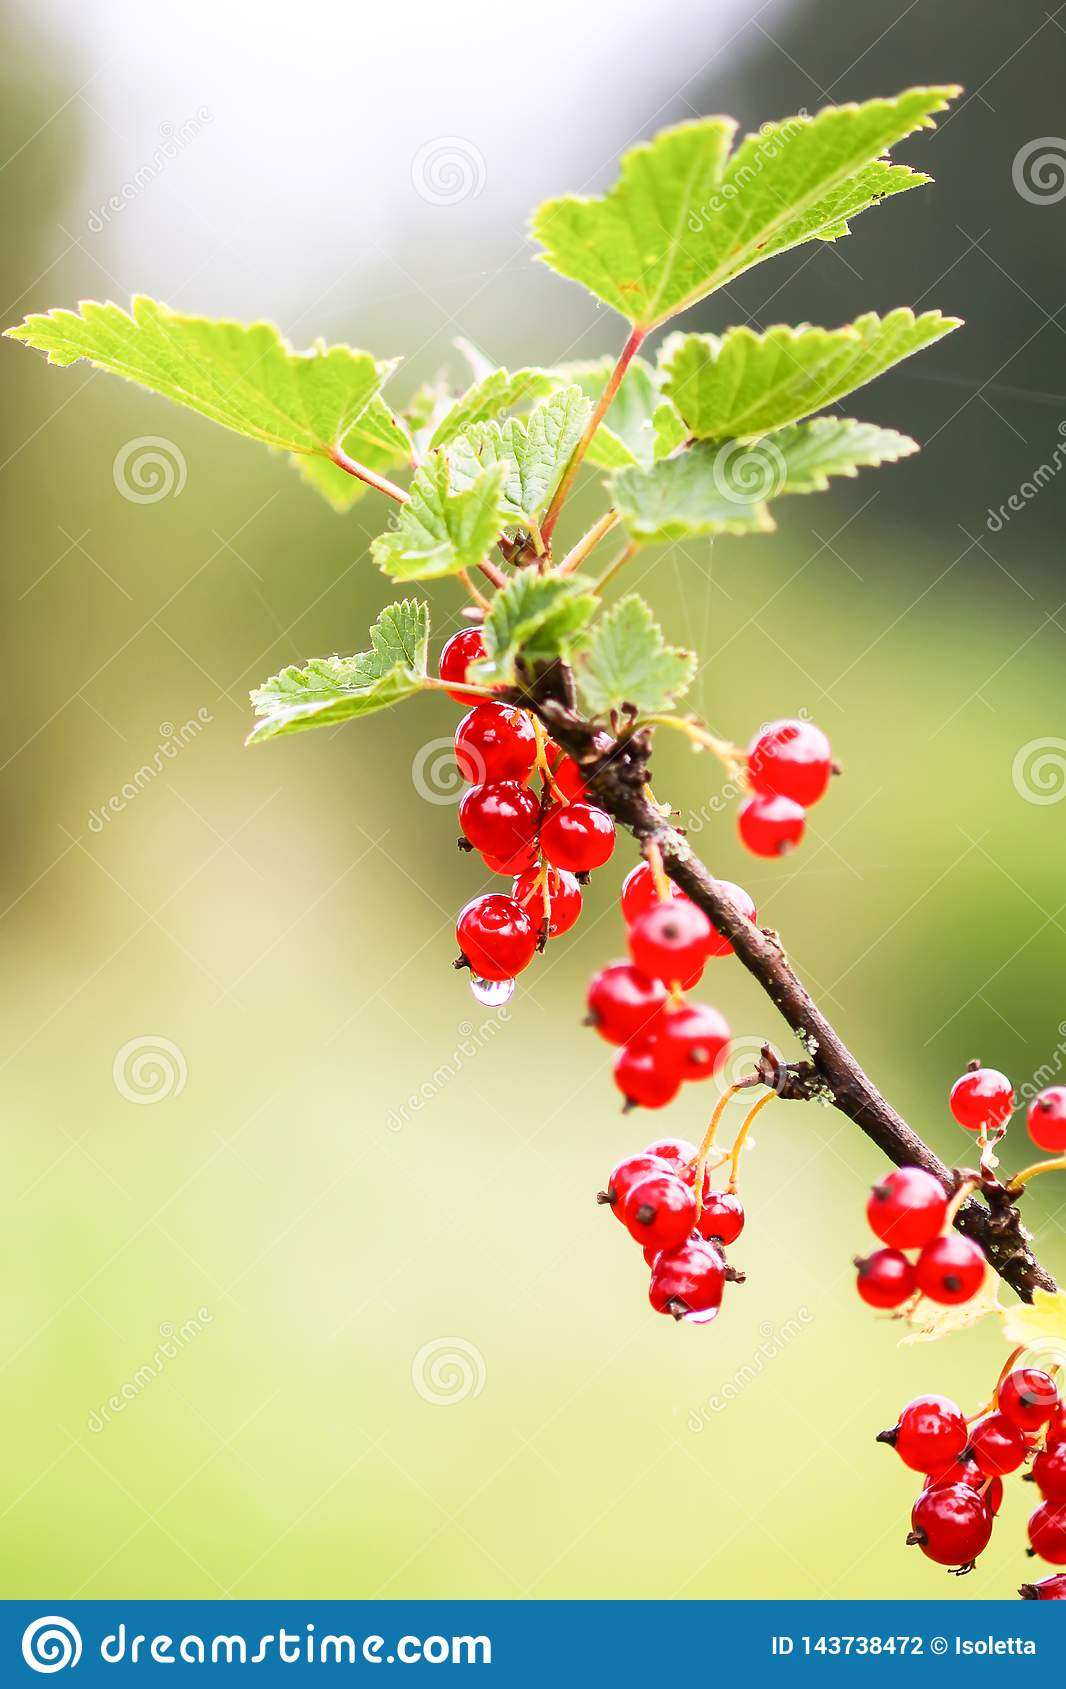 Red currant in a summer garden. Ribes rubrum plant with ripe red berries